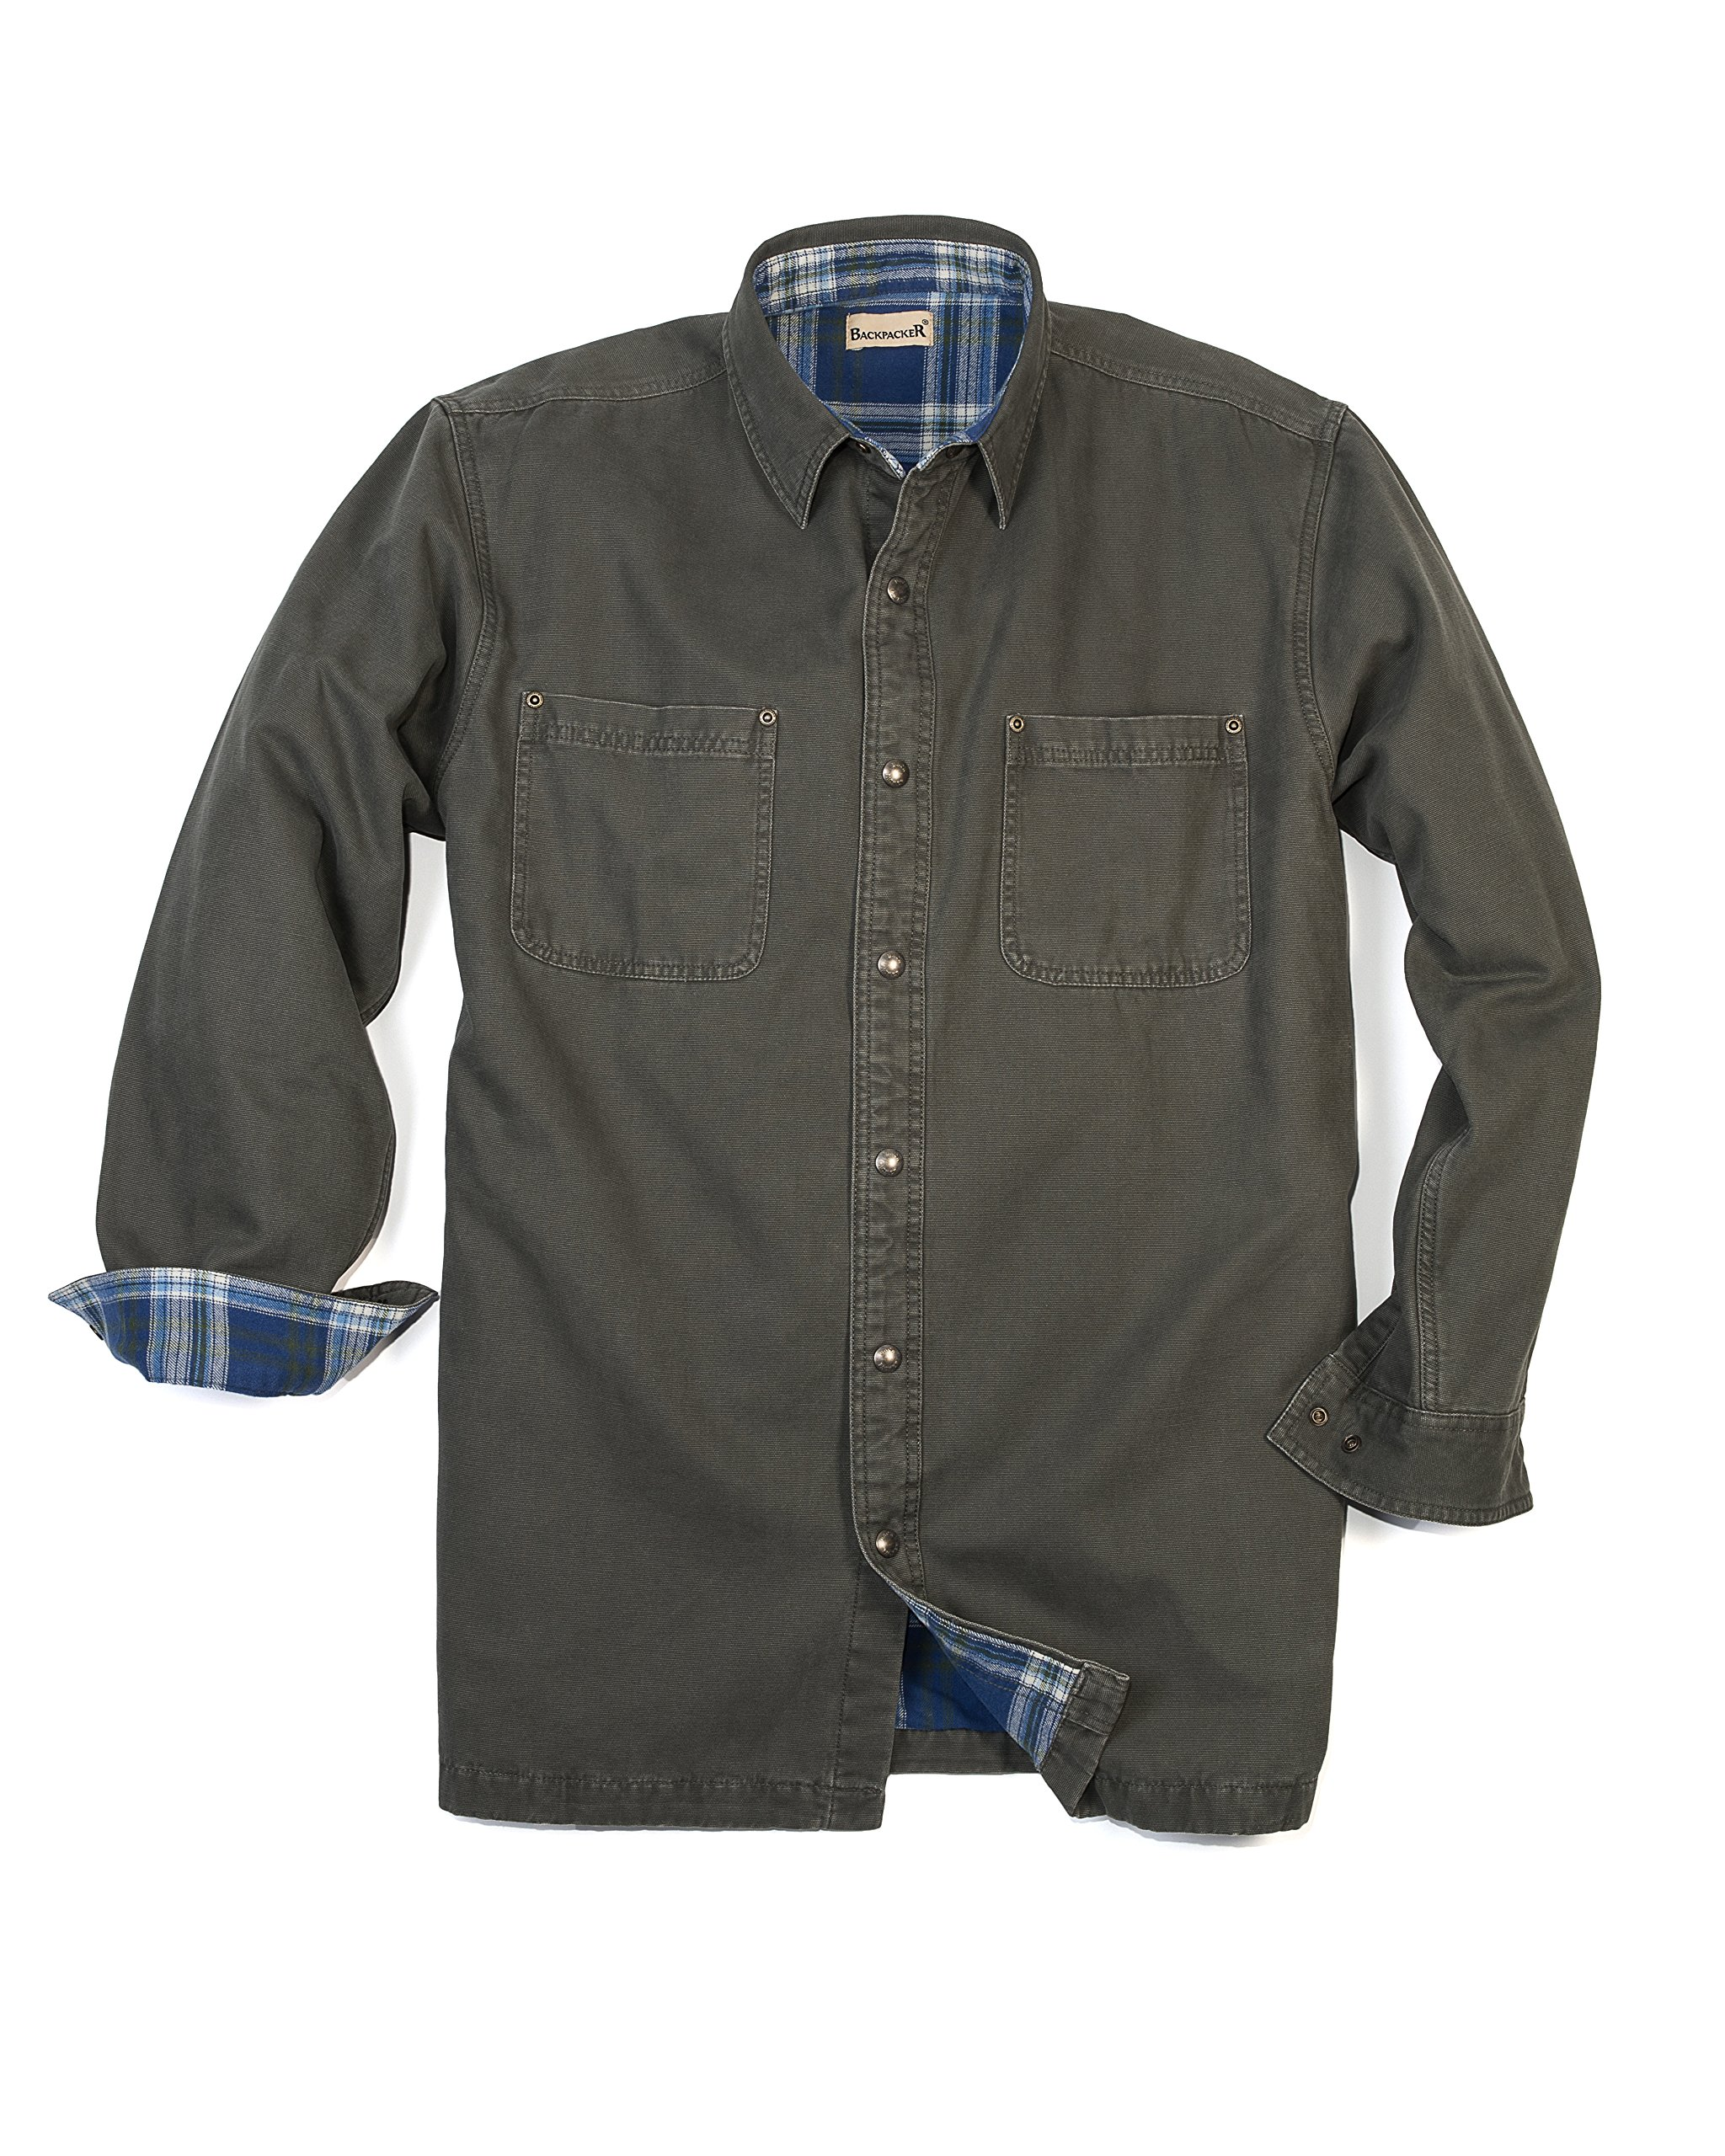 Backpacker Canvas/Flannel Lined Shirt Jacket, Moss Green, 3X-Large Tall by Backpacker